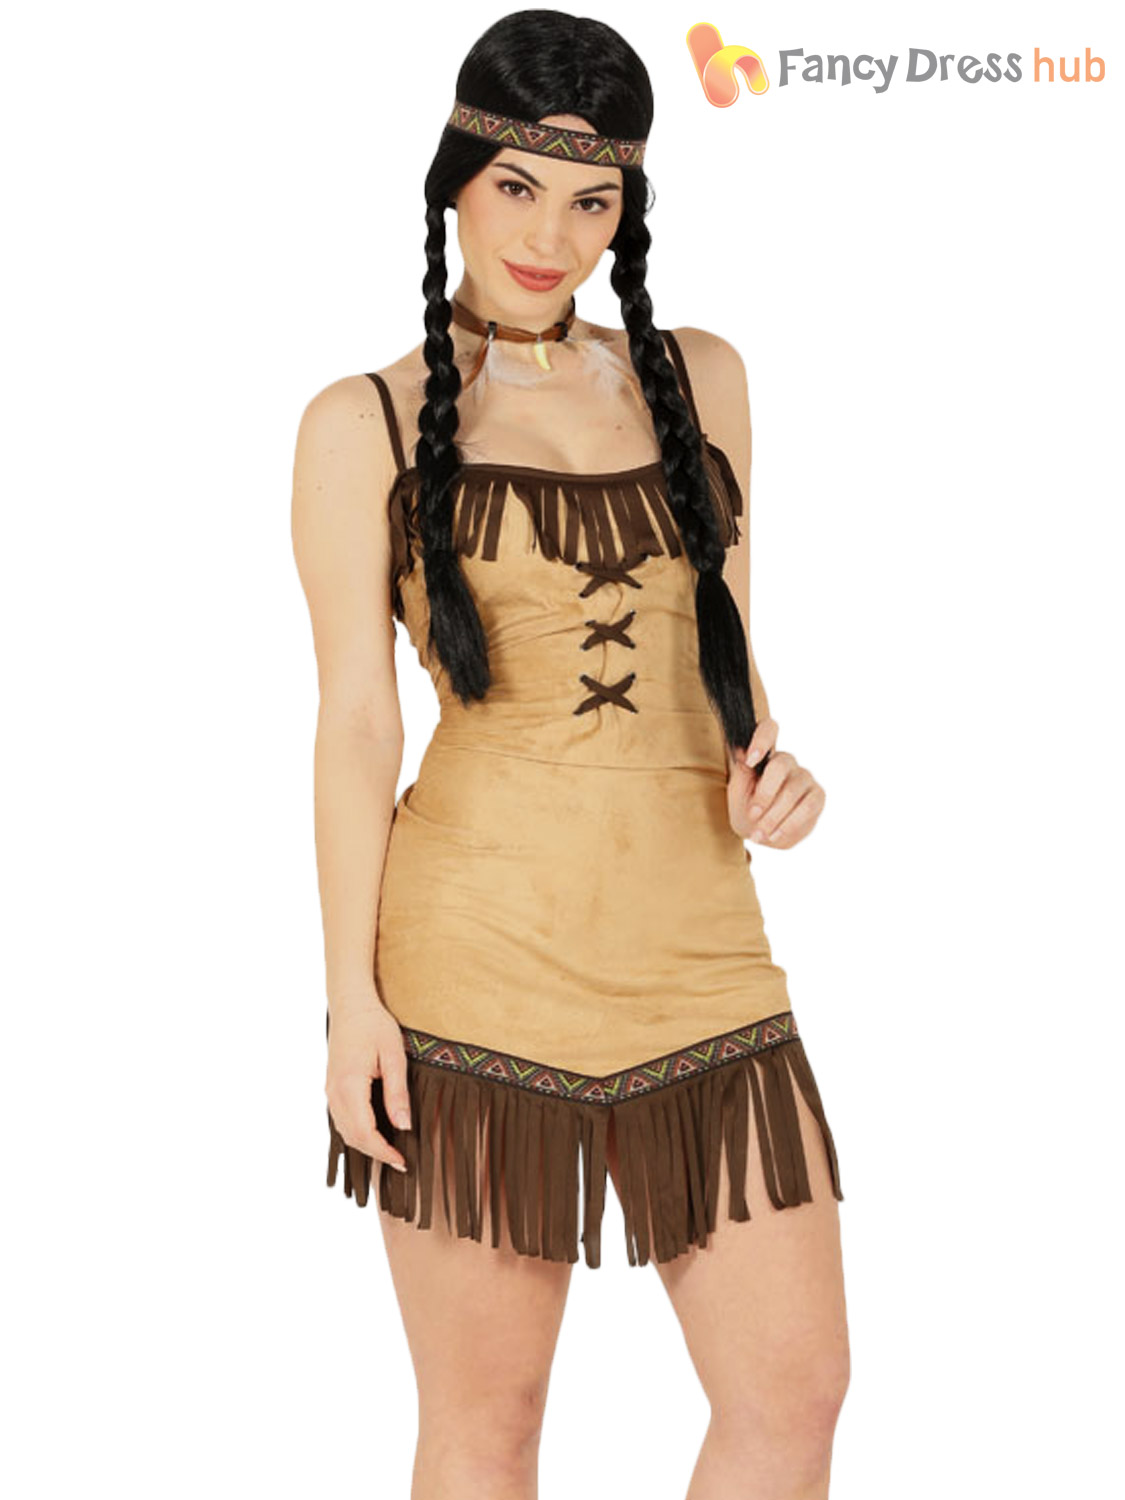 ladies red indian costume adults pocahontas fancy dress native american outfit ebay. Black Bedroom Furniture Sets. Home Design Ideas